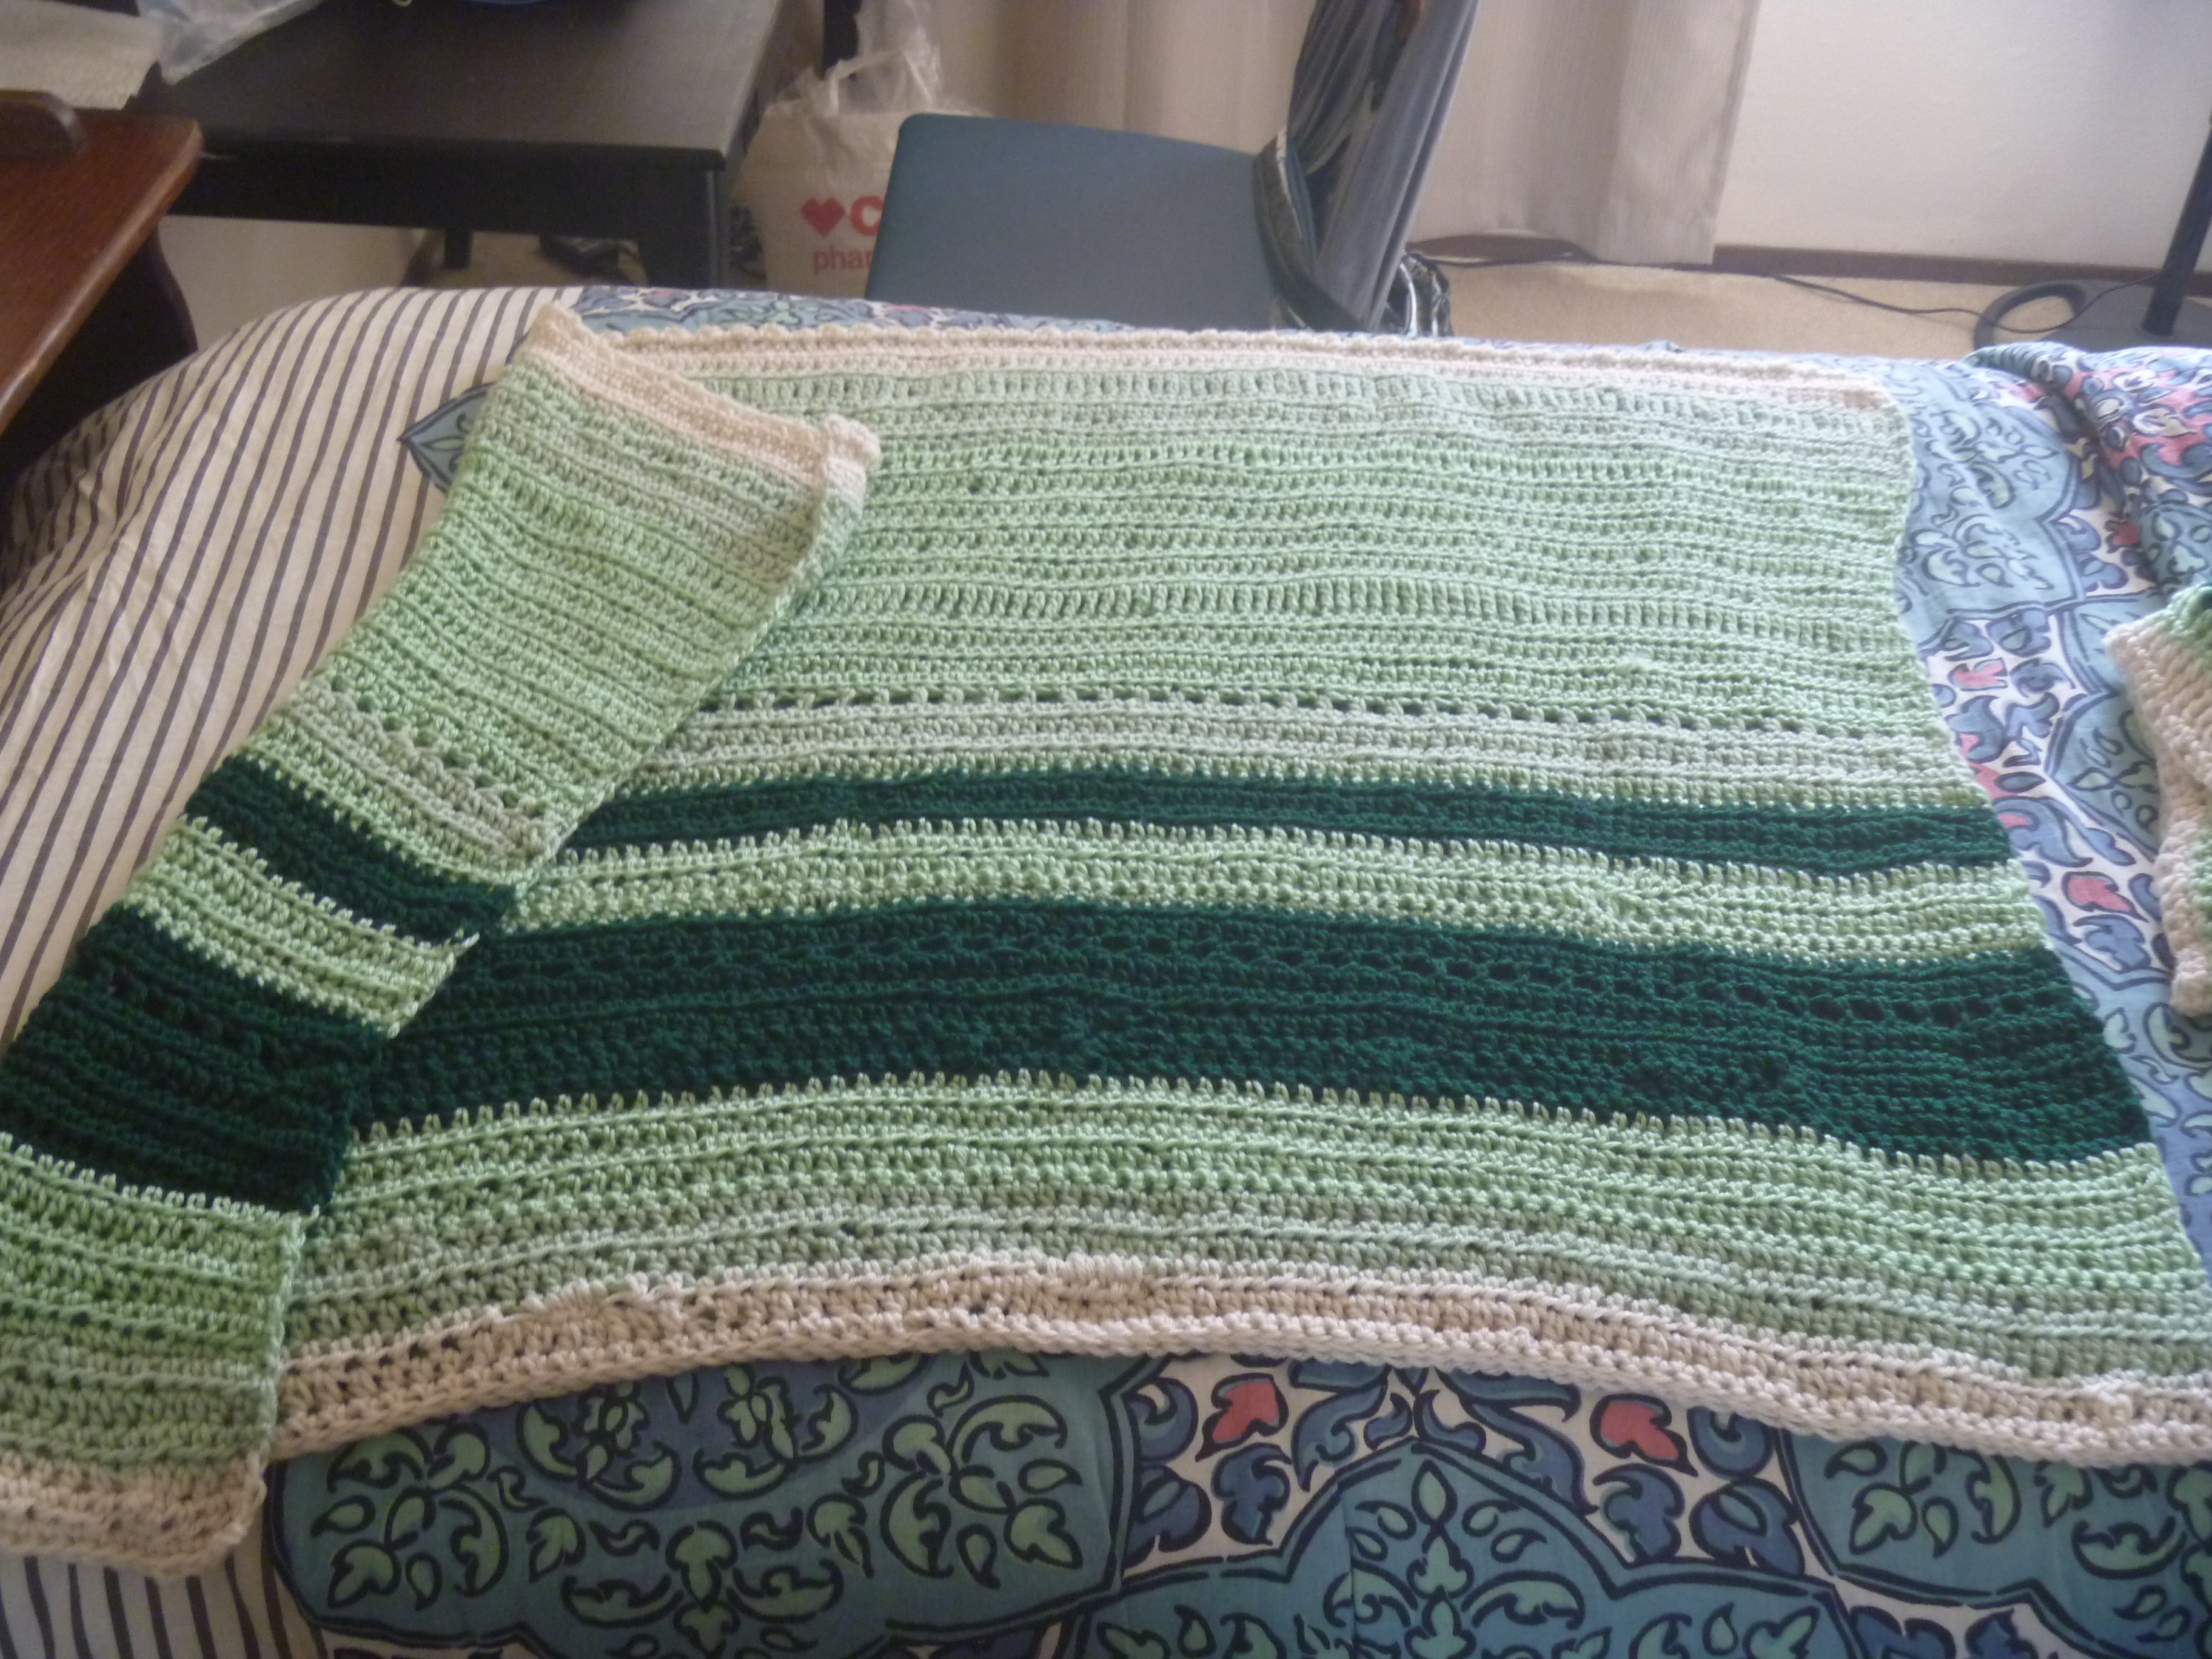 small green and white striped blanket